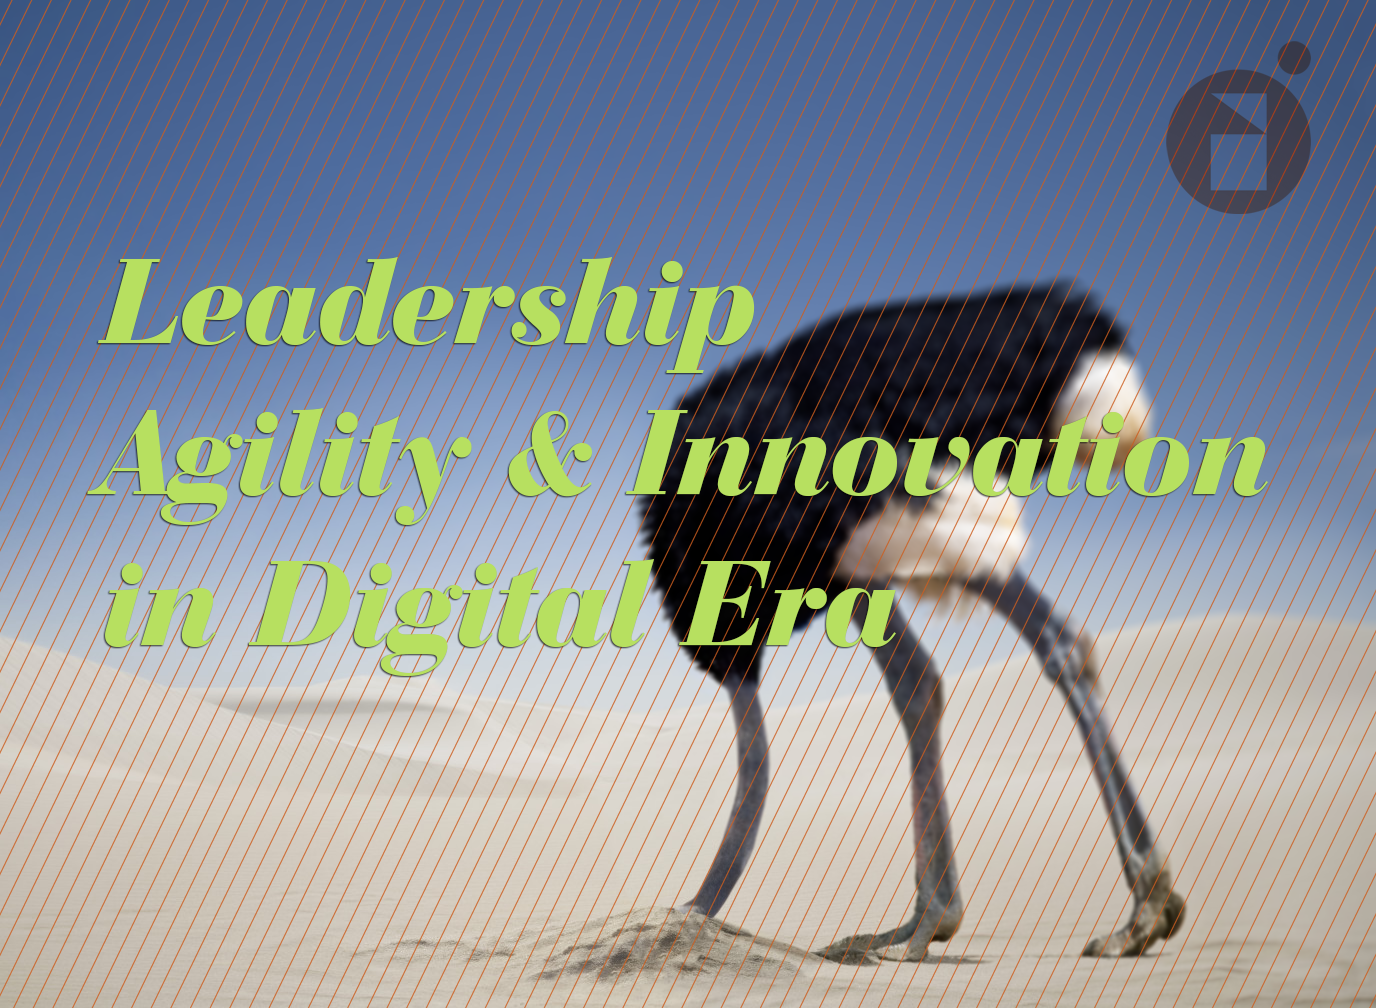 leadership agility and innovation in digital era by Justin Tsui